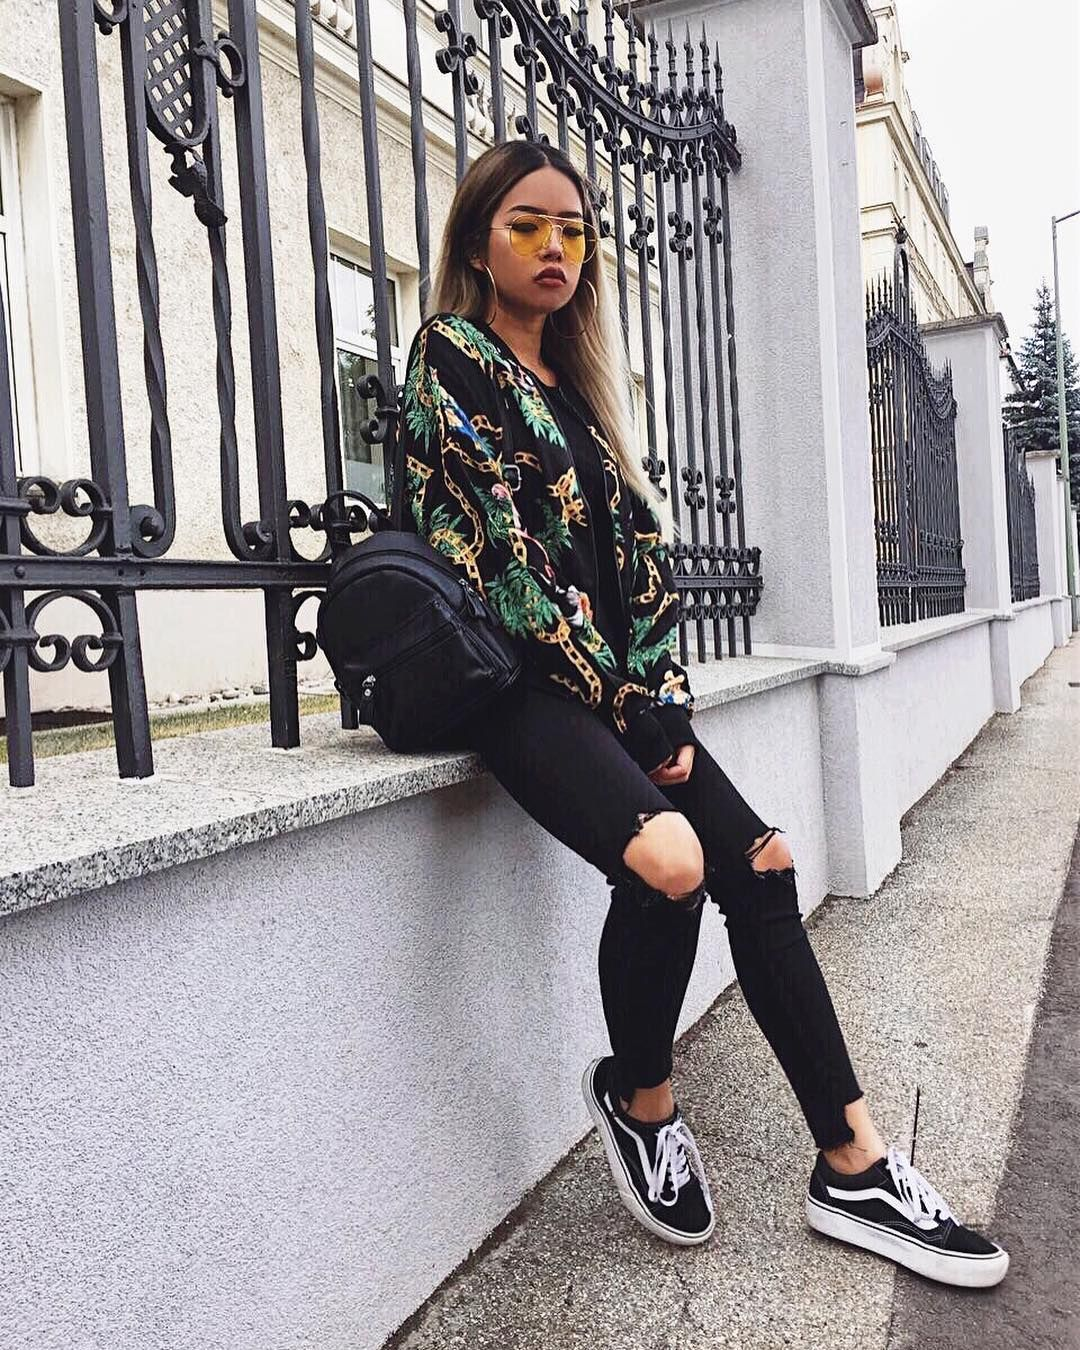 Casual Street Wear Patterned Jacket With Ripped Black Jeans And